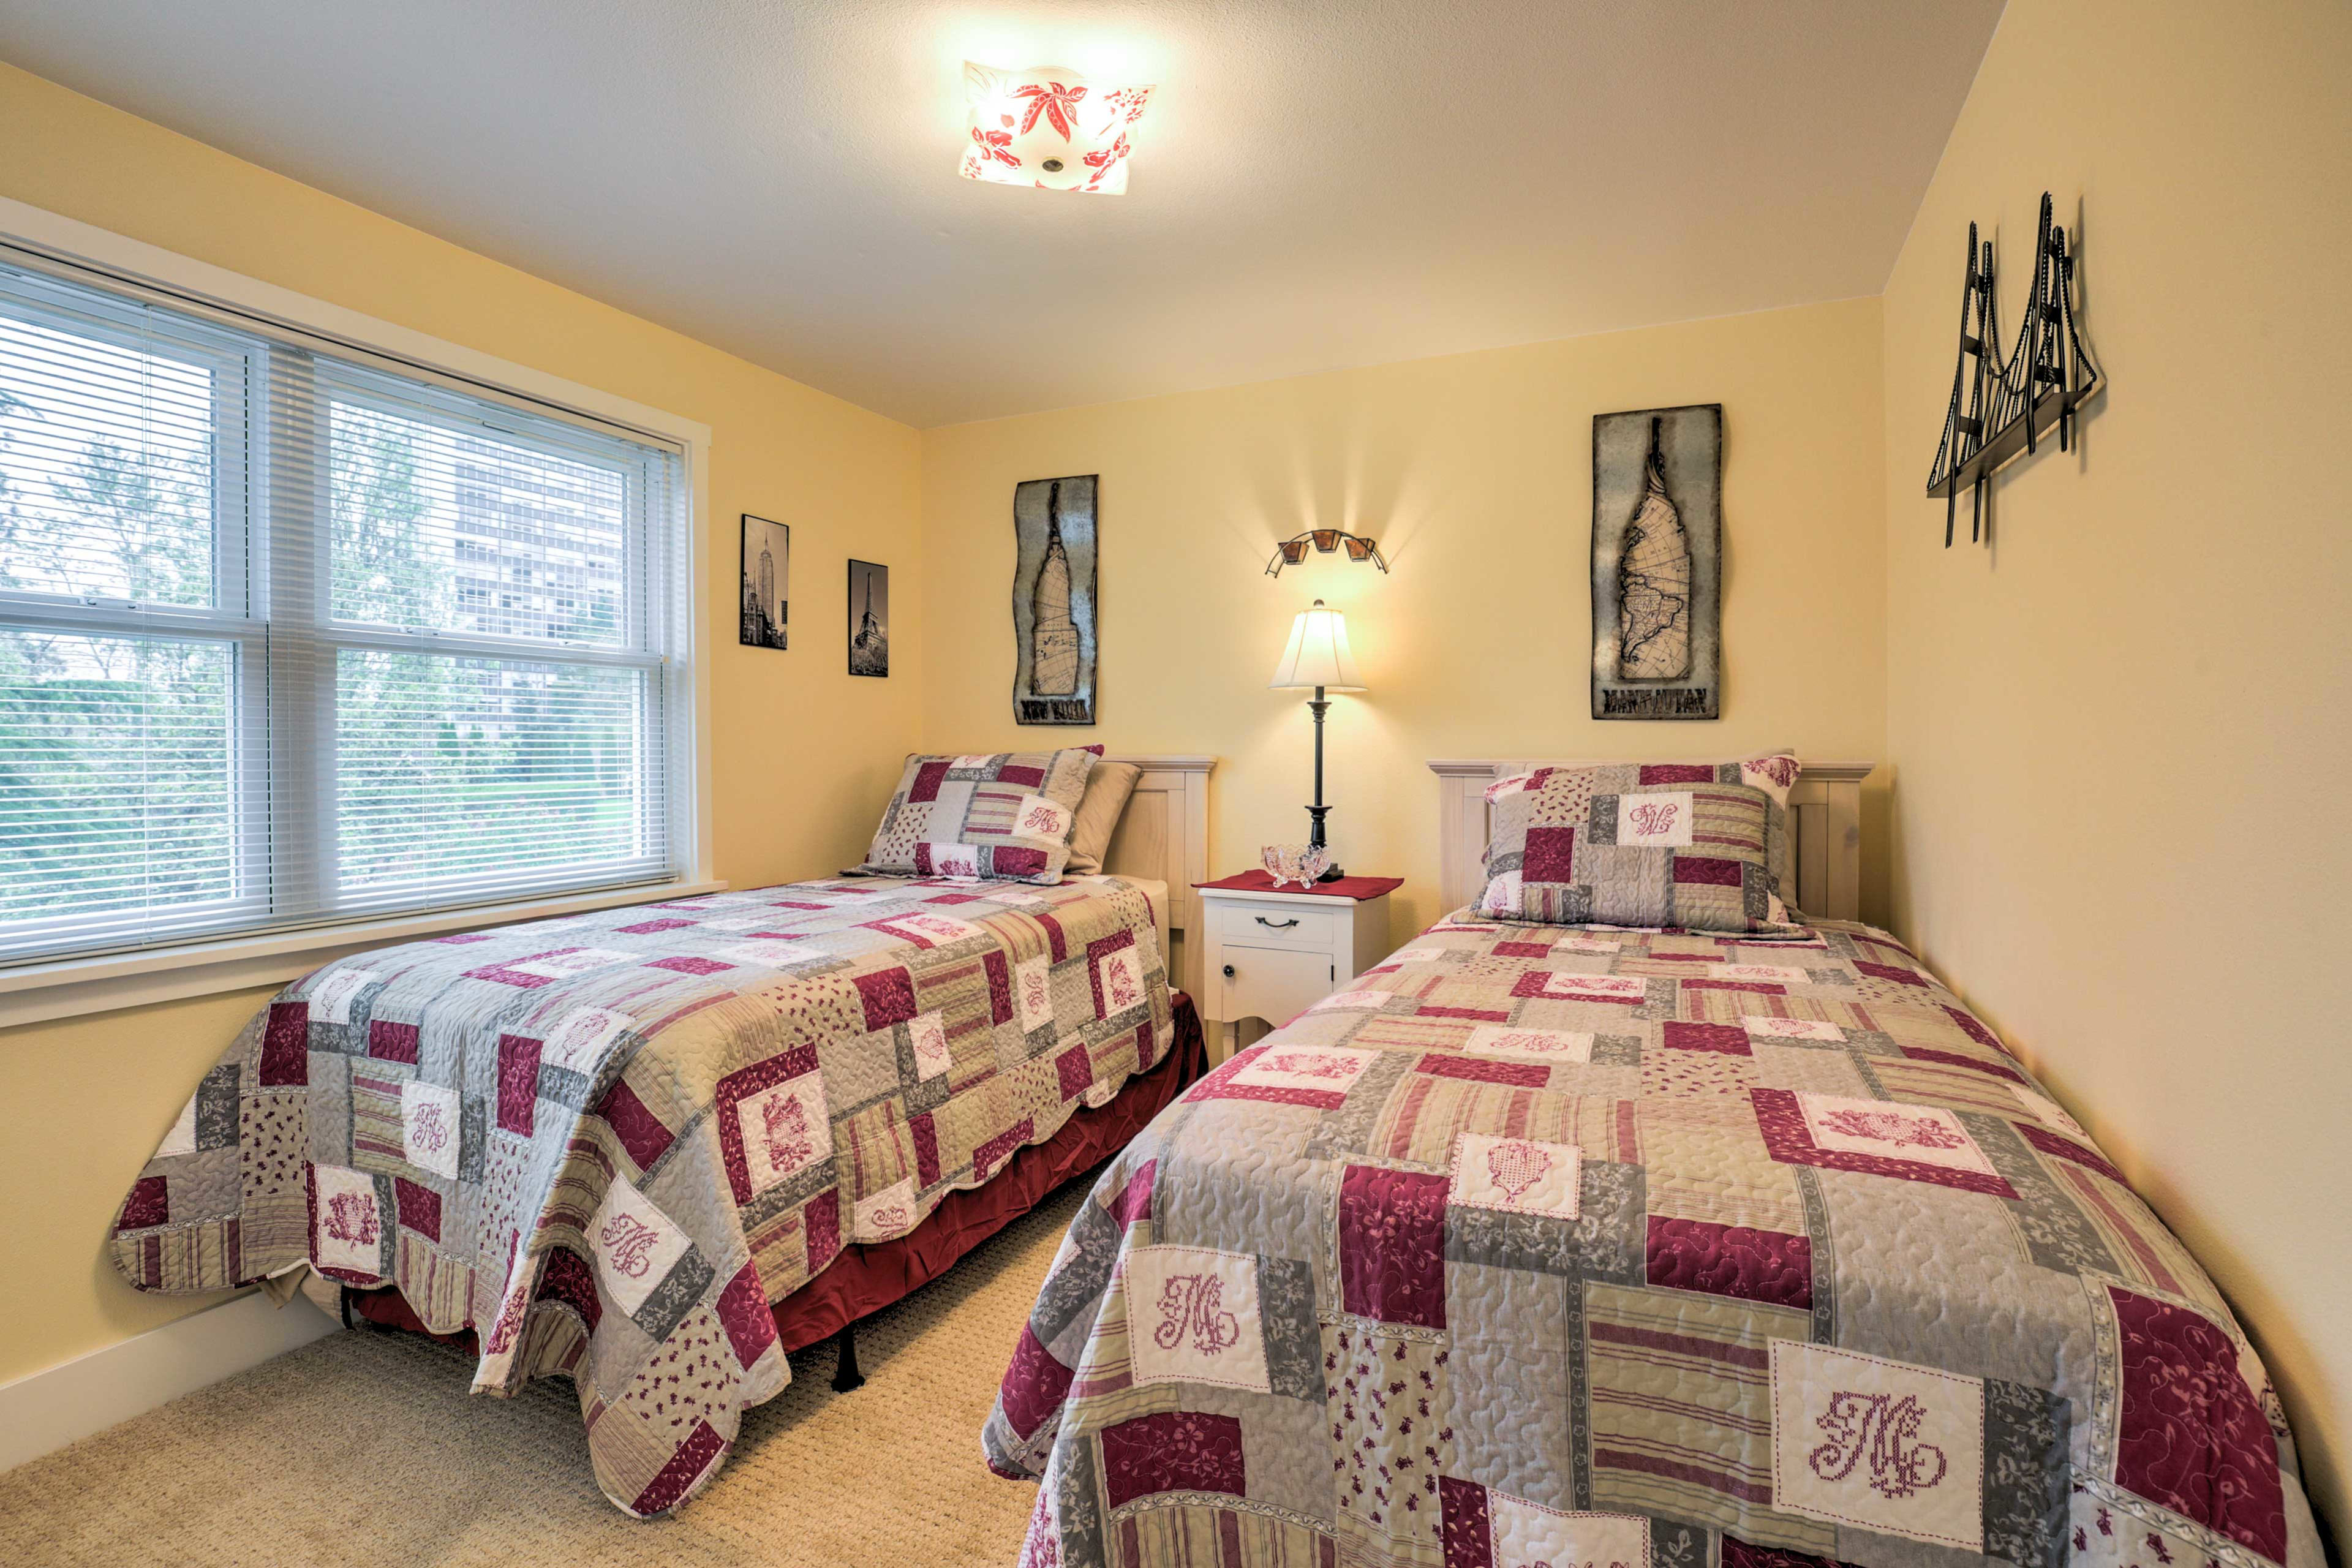 2 twin beds make this room perfect for families traveling with young kids.